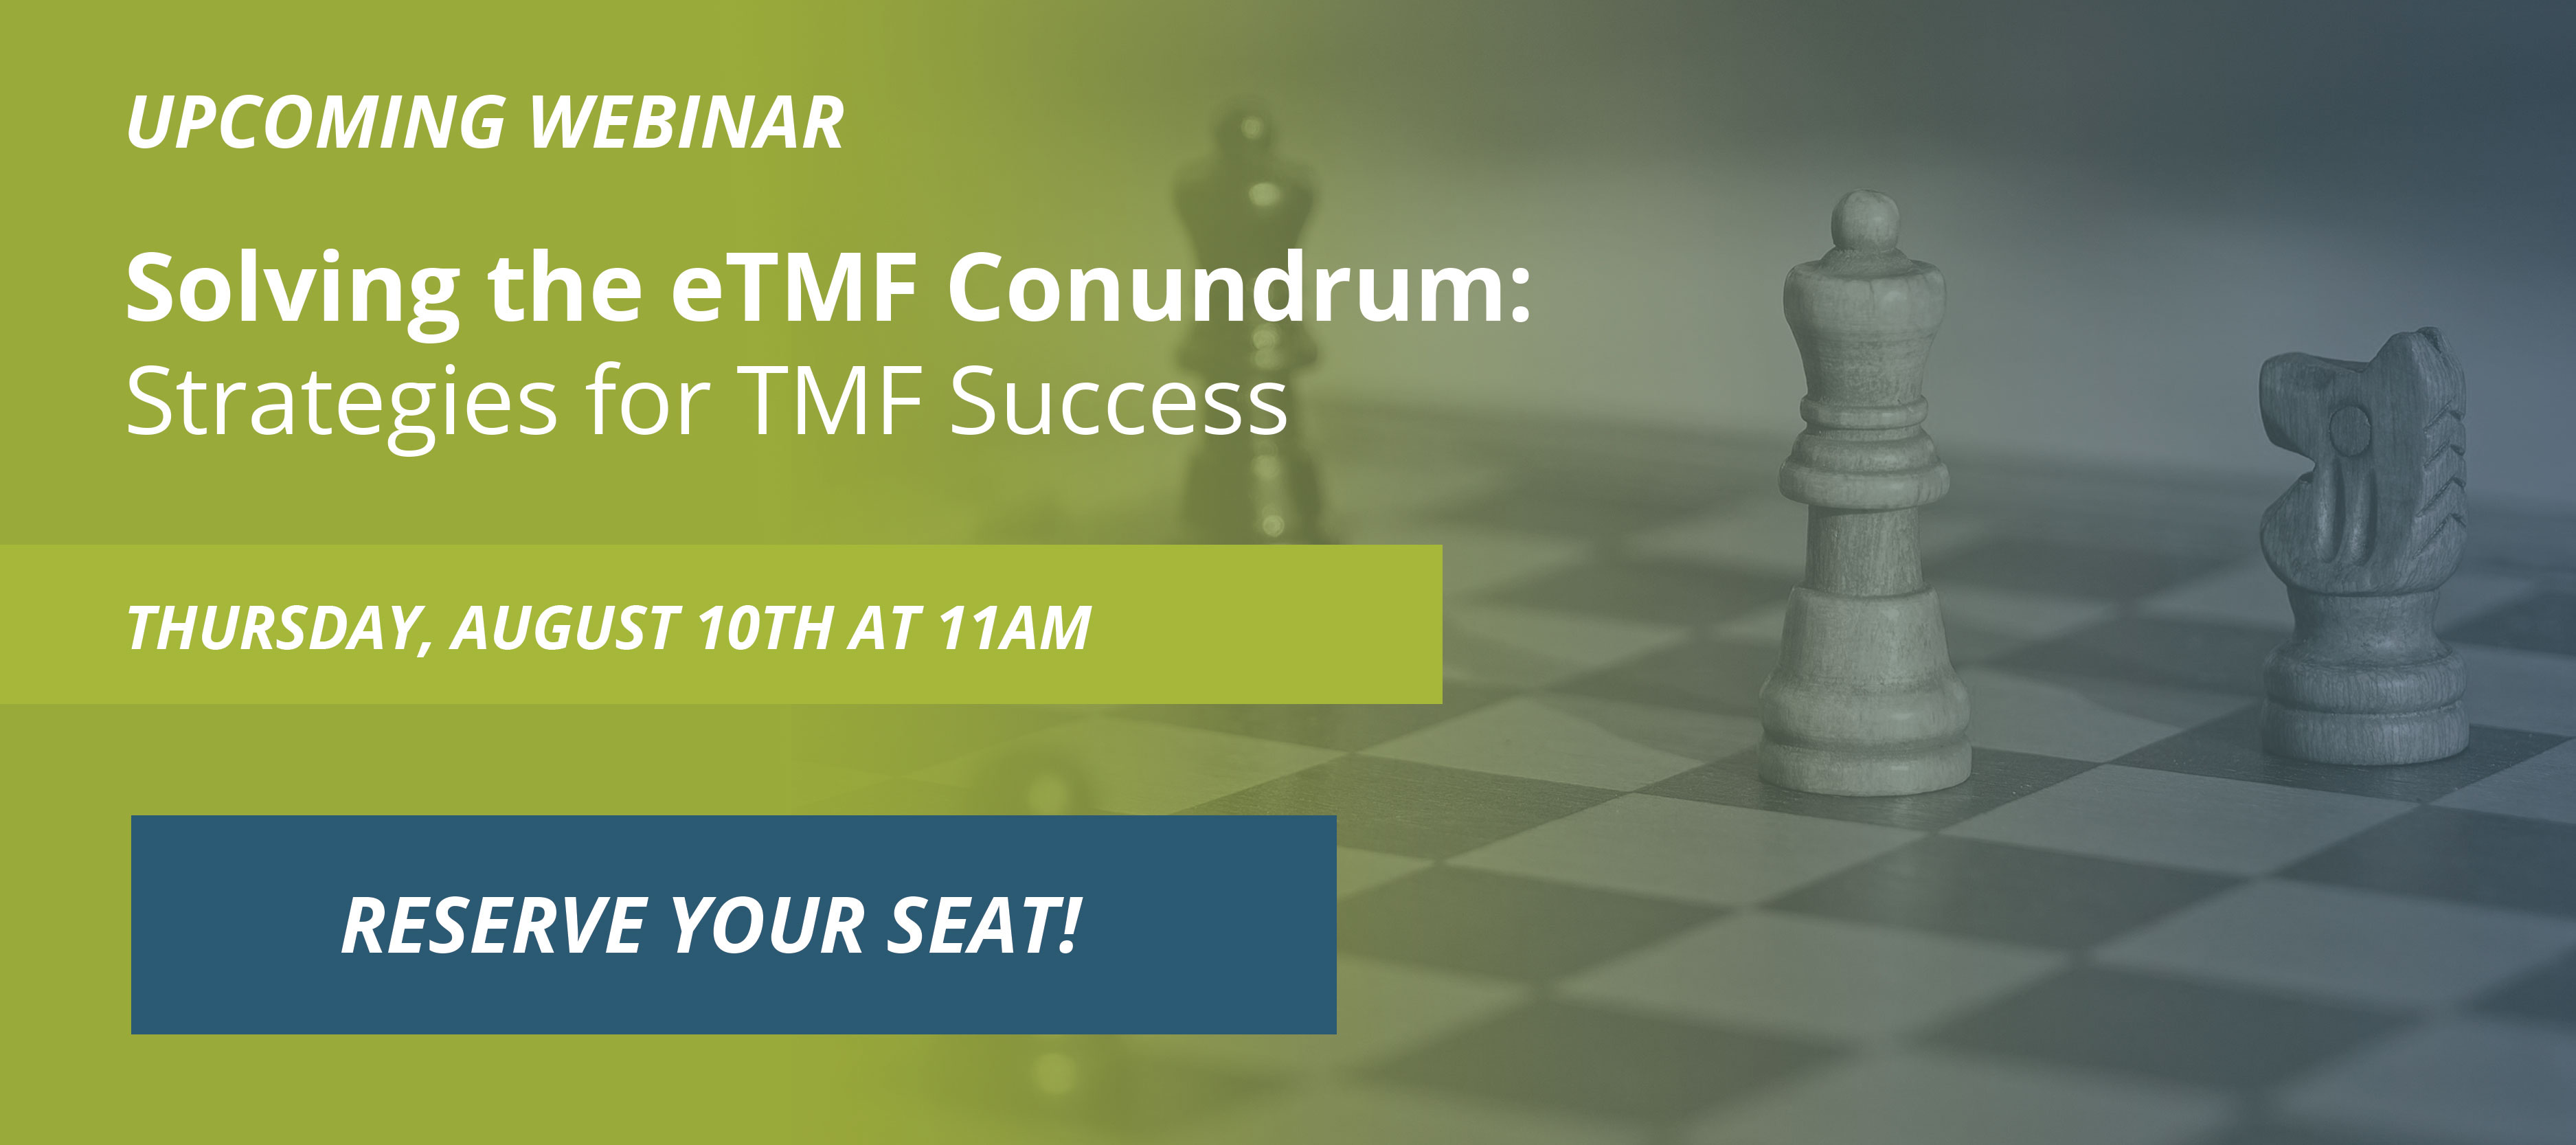 Solving the eTMF Conundrum